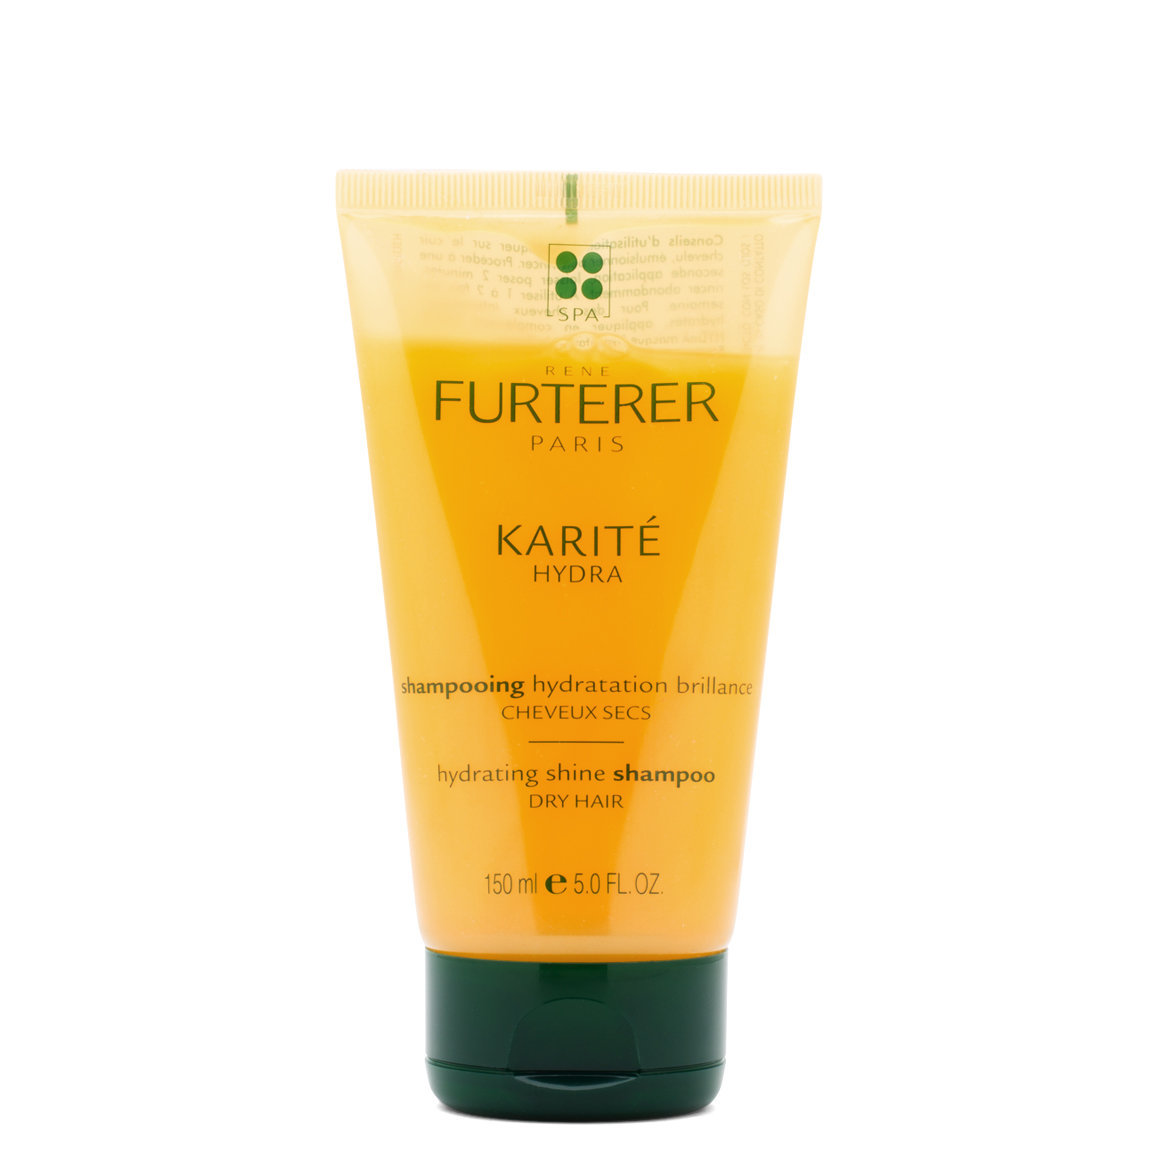 Rene Furterer Karite Hydra Hydrating Shine Shampoo product swatch.